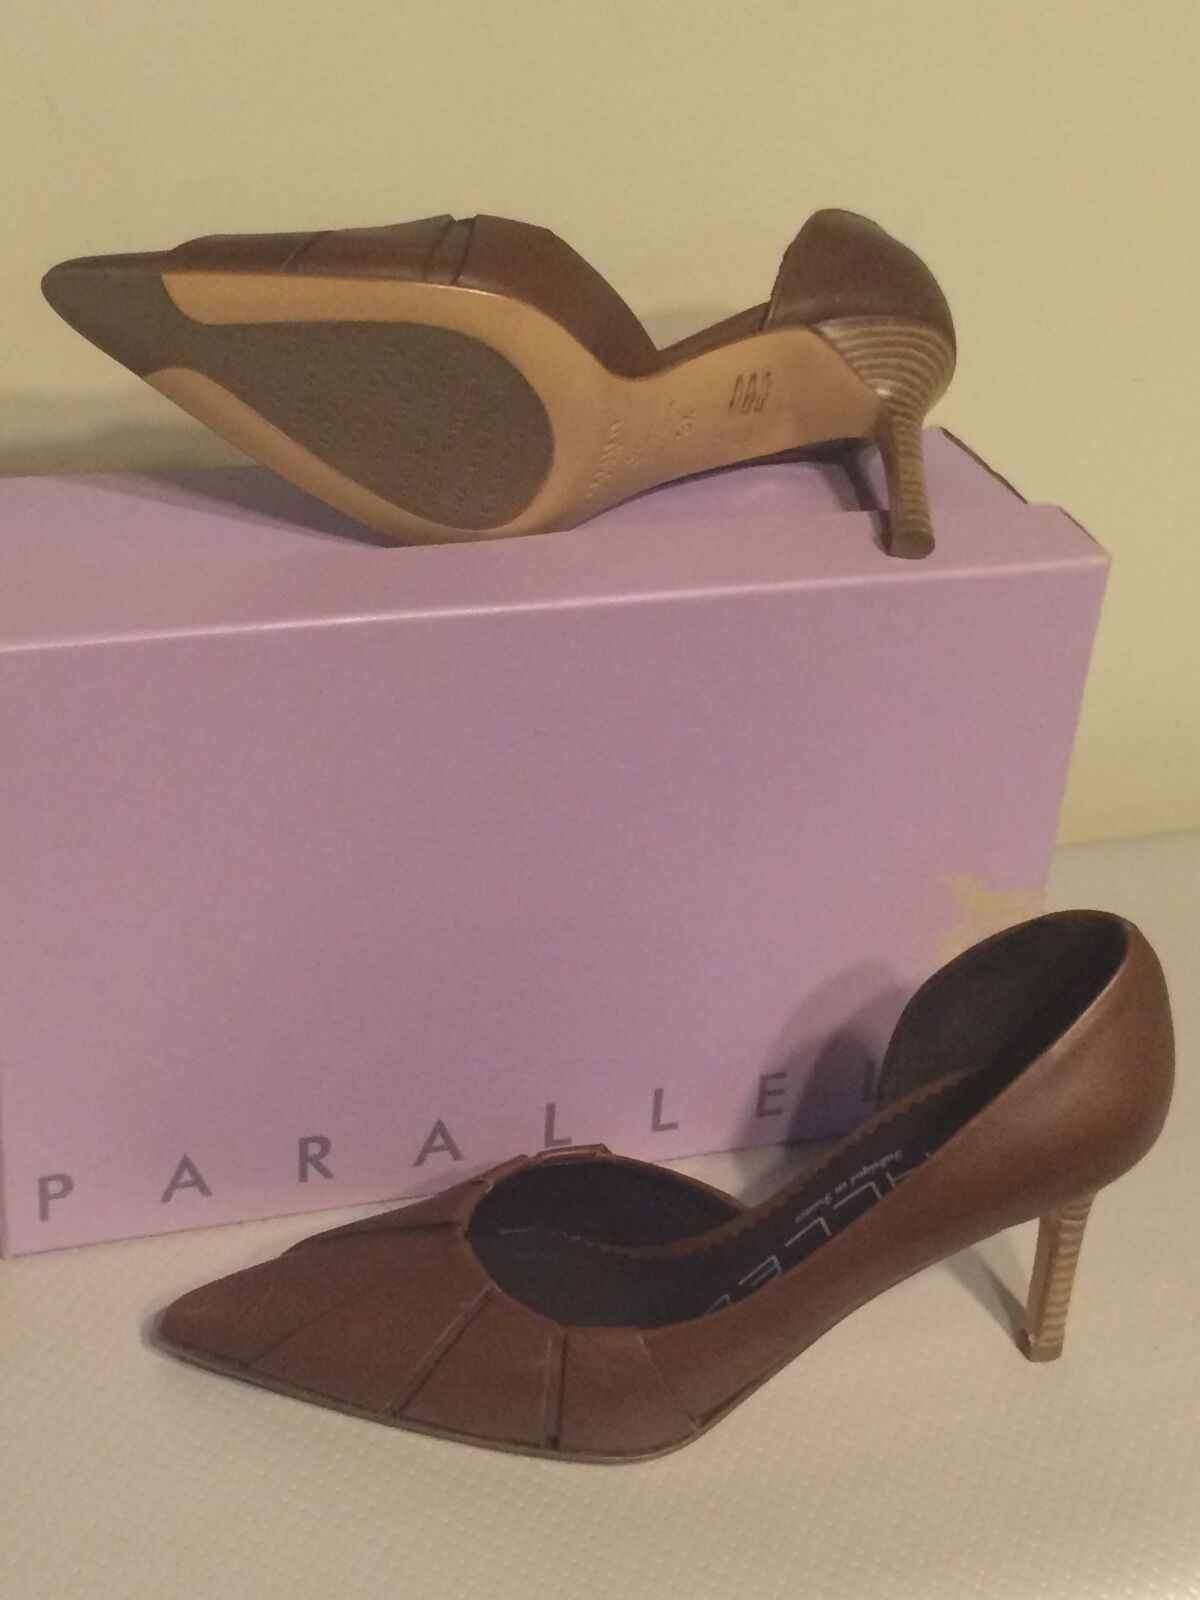 Parallele Paneled Pointy Toe Leder Größe Heels Made In France Größe Leder US 6 064260